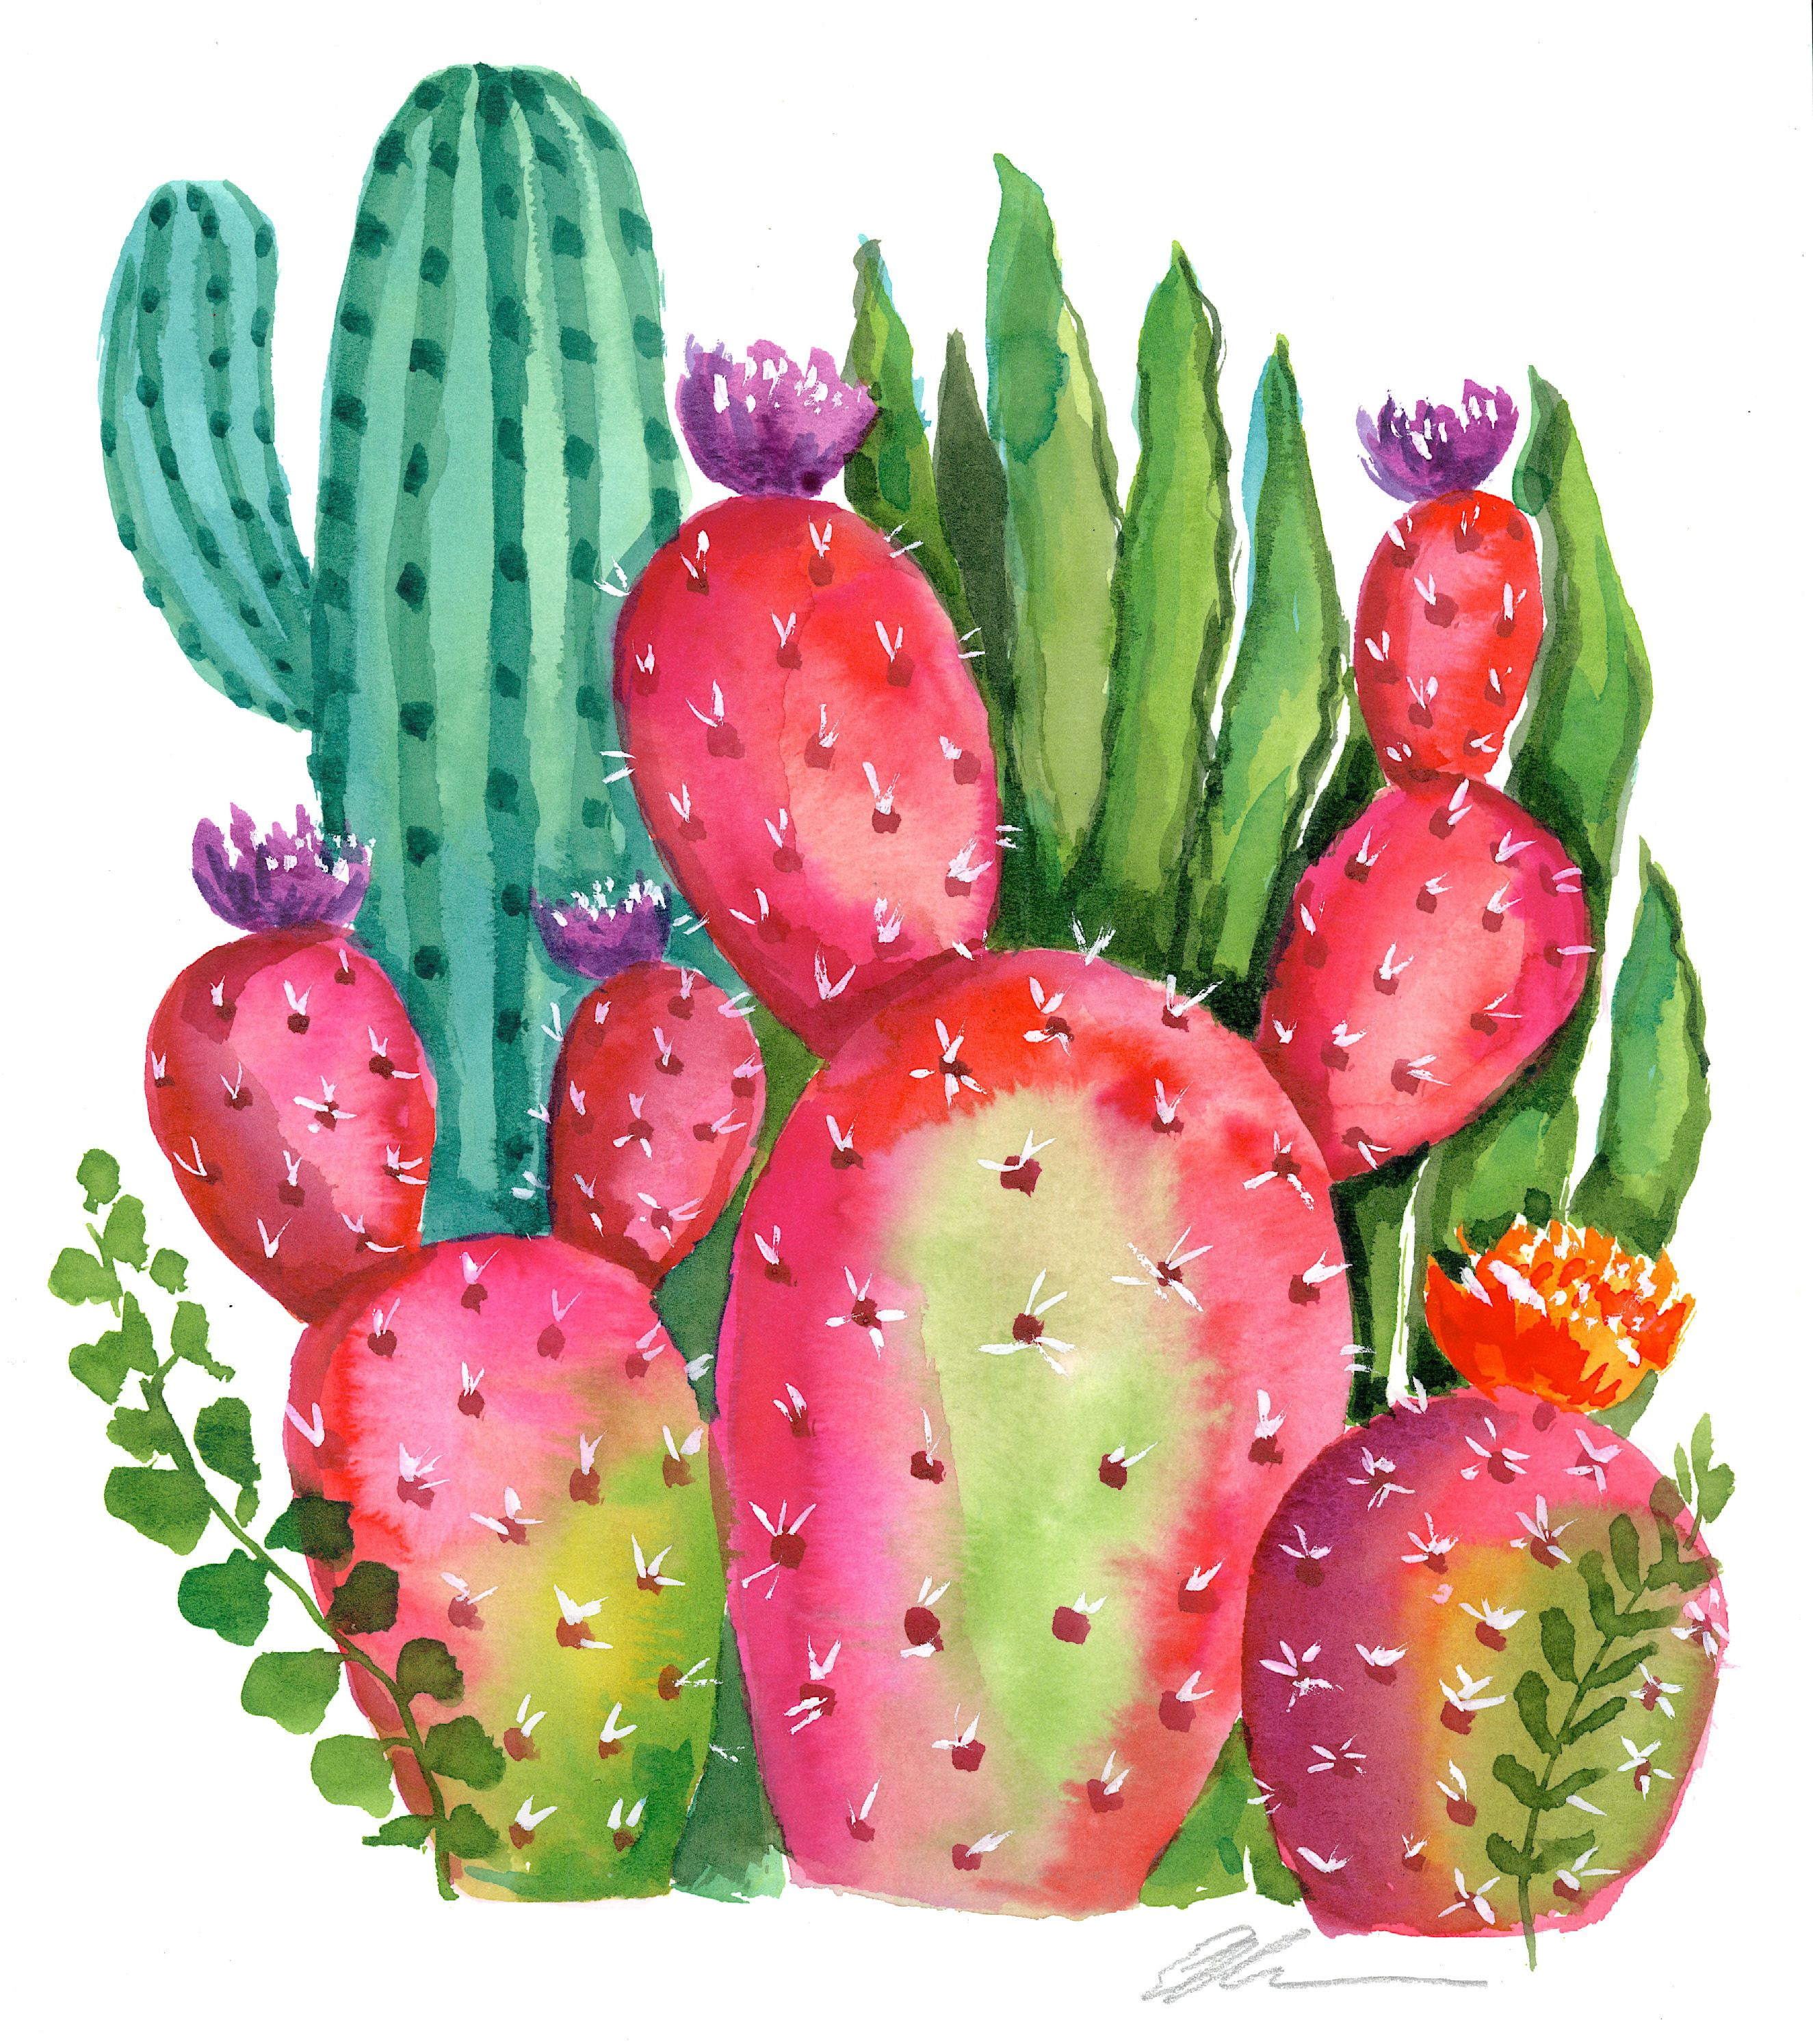 Watercolor Cactus Painting Watercolor Decor Cactus Succulents Watercolorart Watercolorcactus Sout Cactus Paintings Cactus Flower Painting Cactus Painting